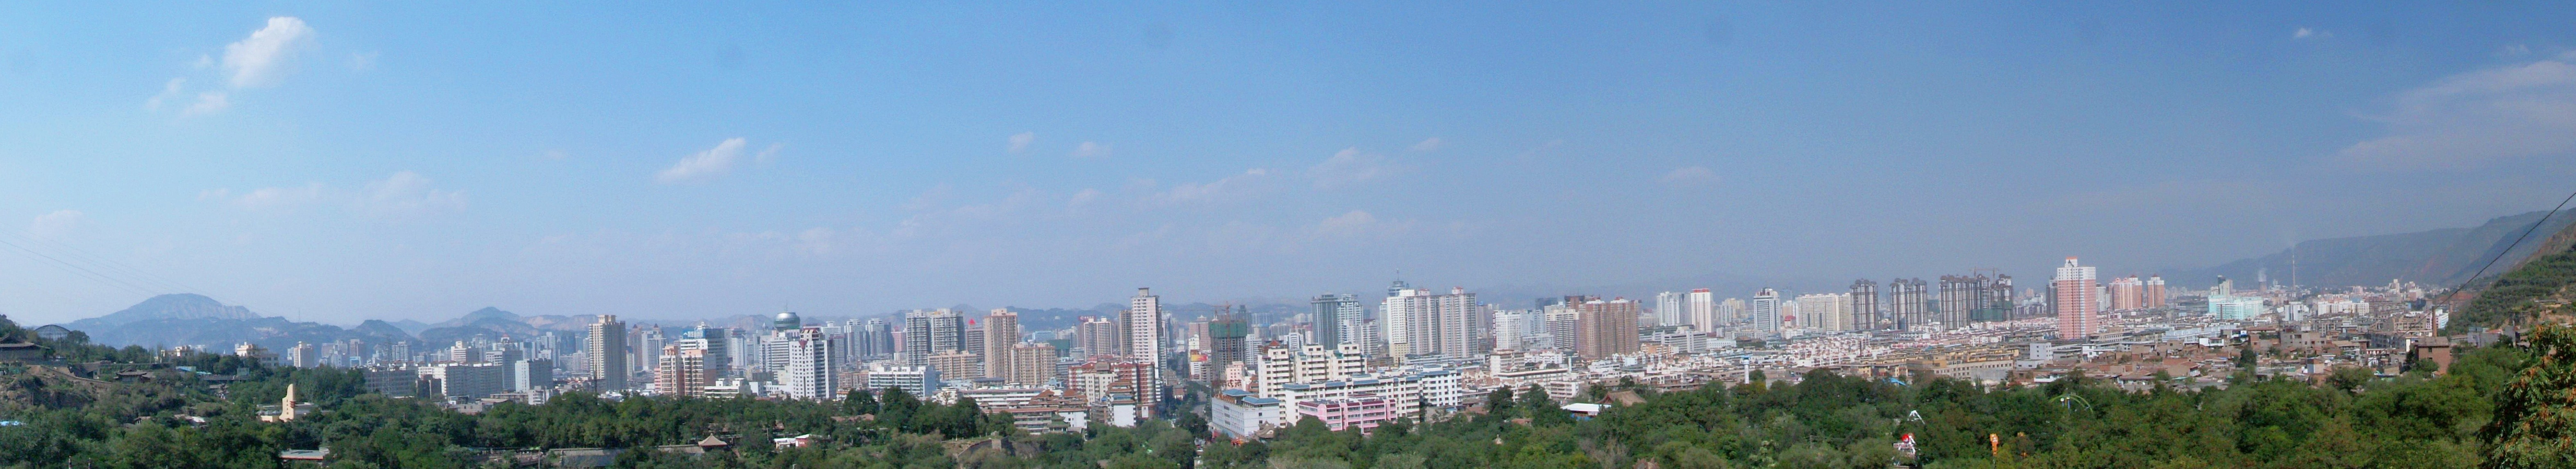 Yangquan China  city photos : Lanzhou city from Five Springs Park Wikipedia, the free ...